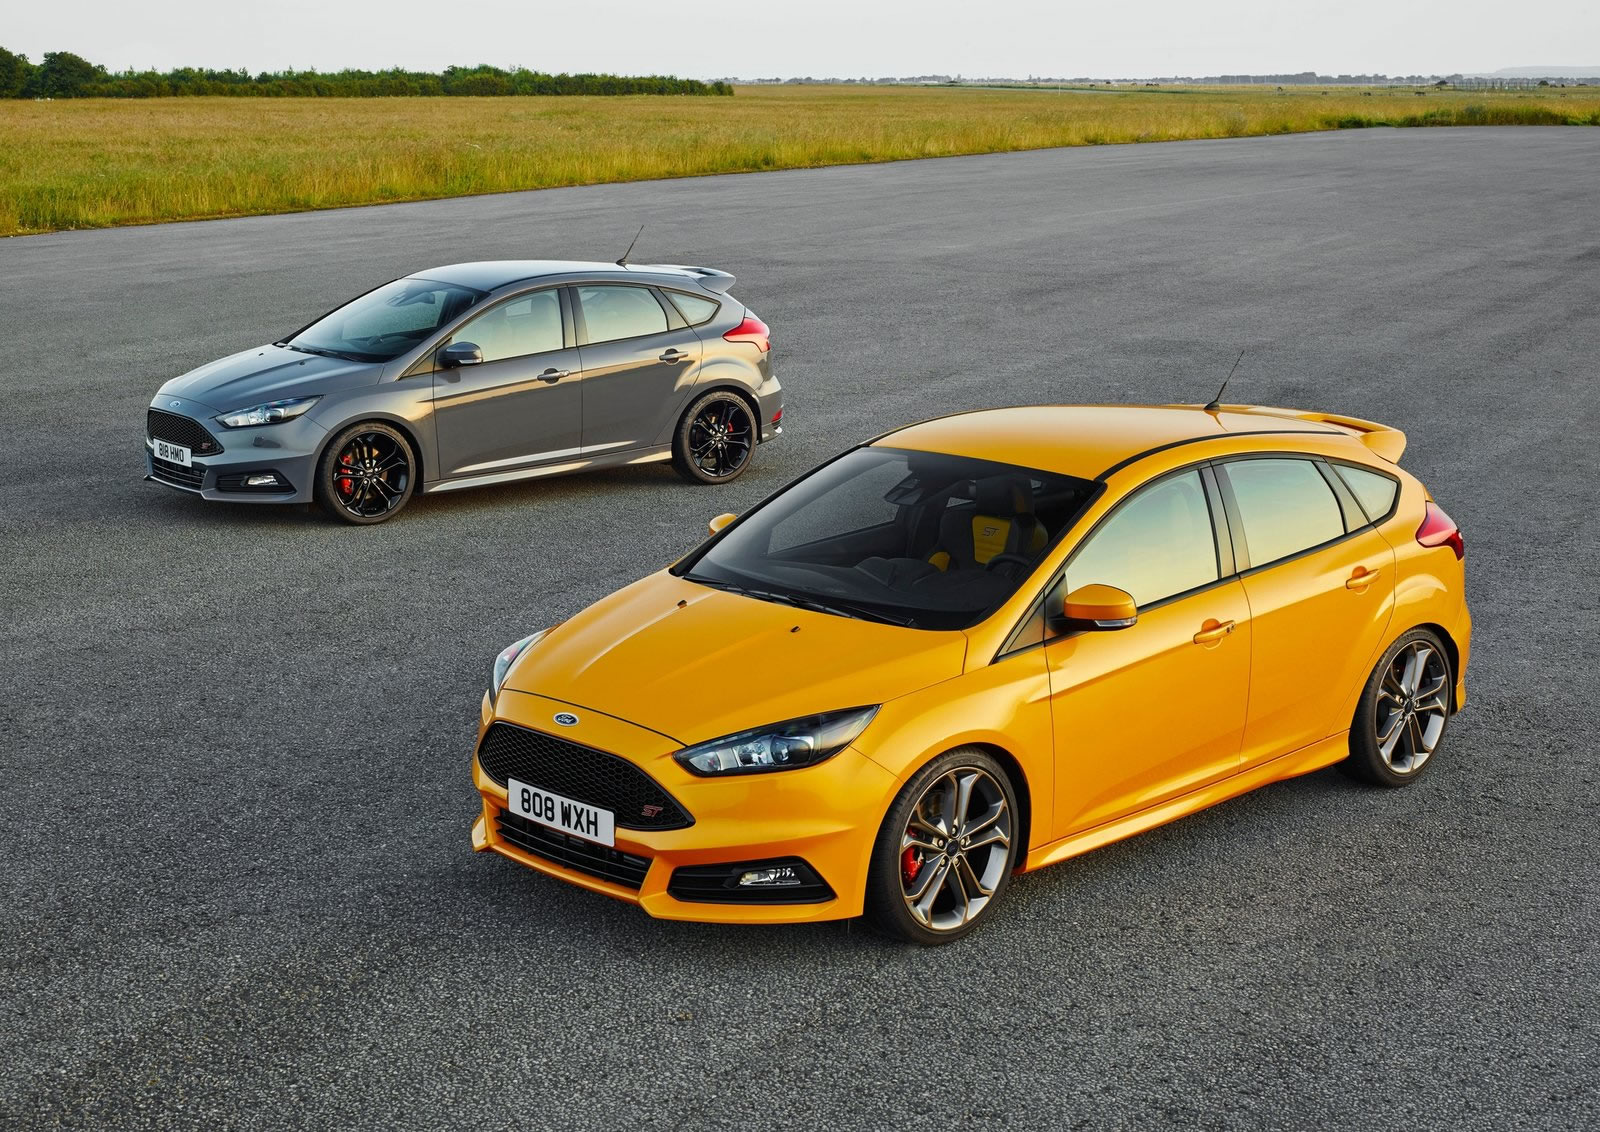 2015 Ford Focus St Front Photo Tangerine Scream Color